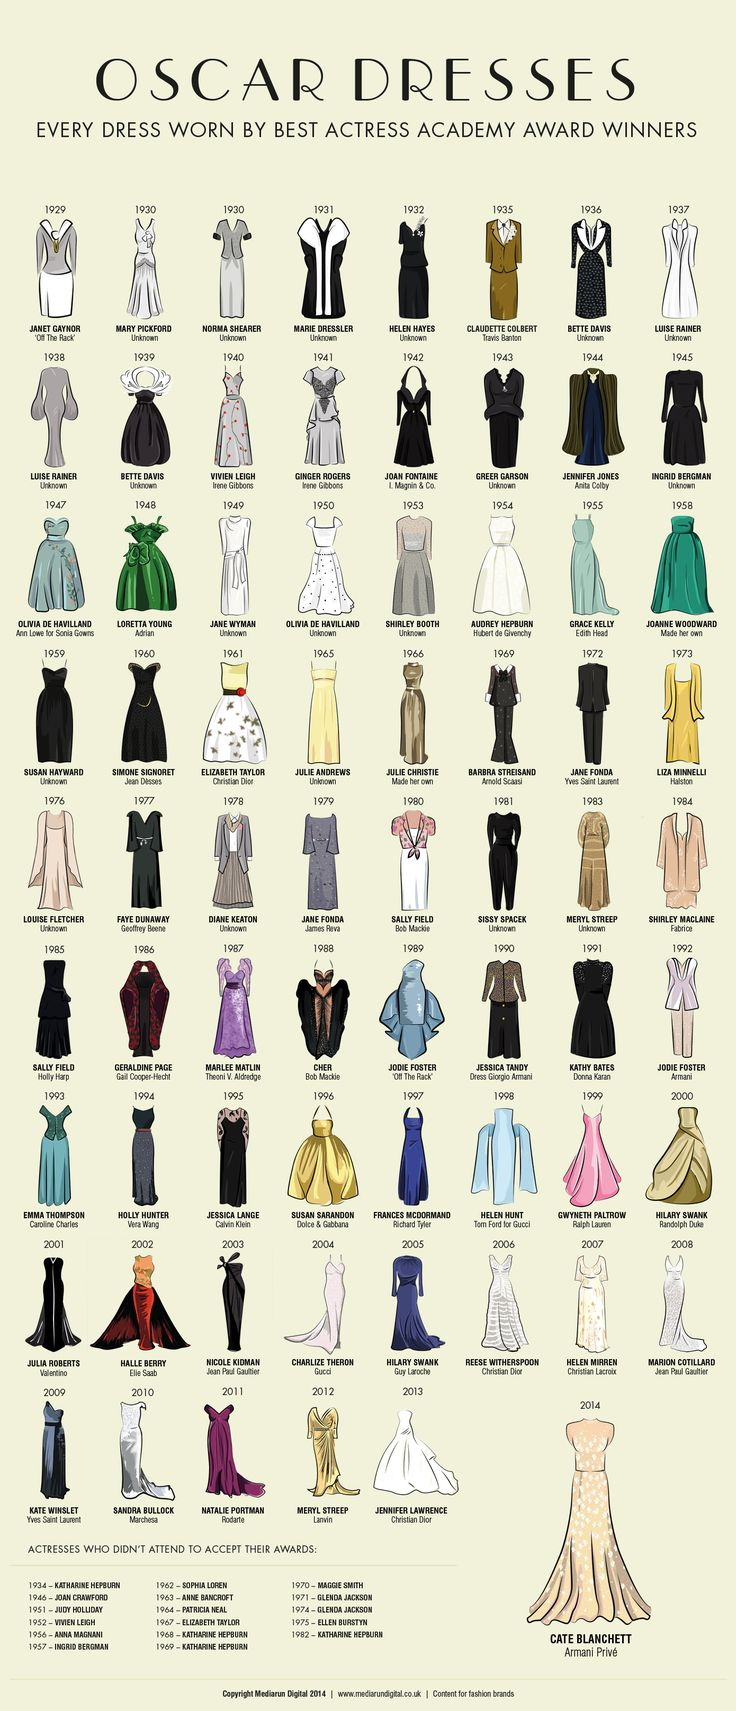 Best Actress Oscar Dresses